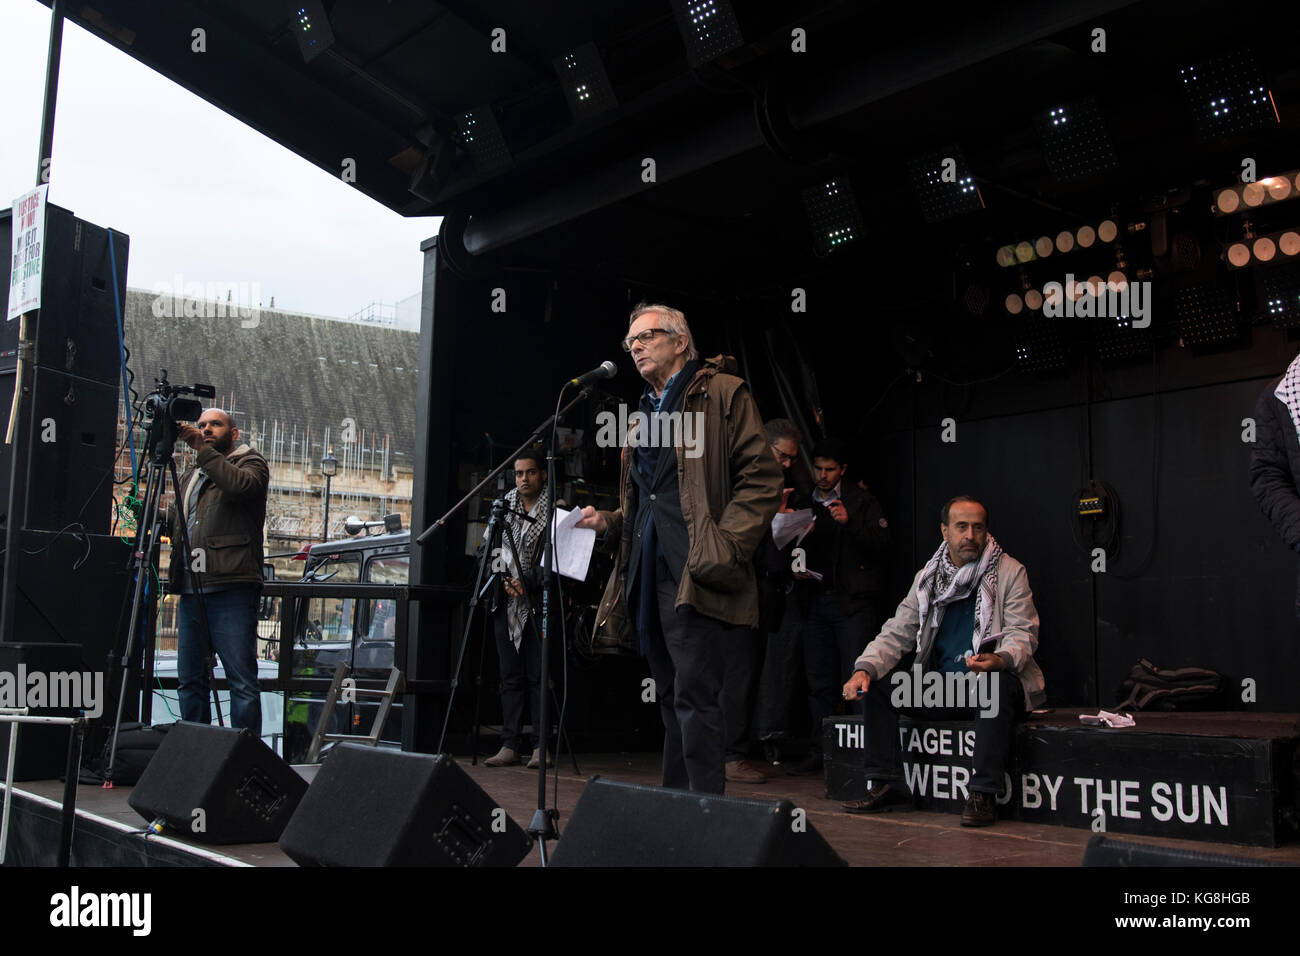 London, UK. 4 November 2017. Film director Ken Loach addresses thousands of protesters in Parliament Square to protest - Stock Image